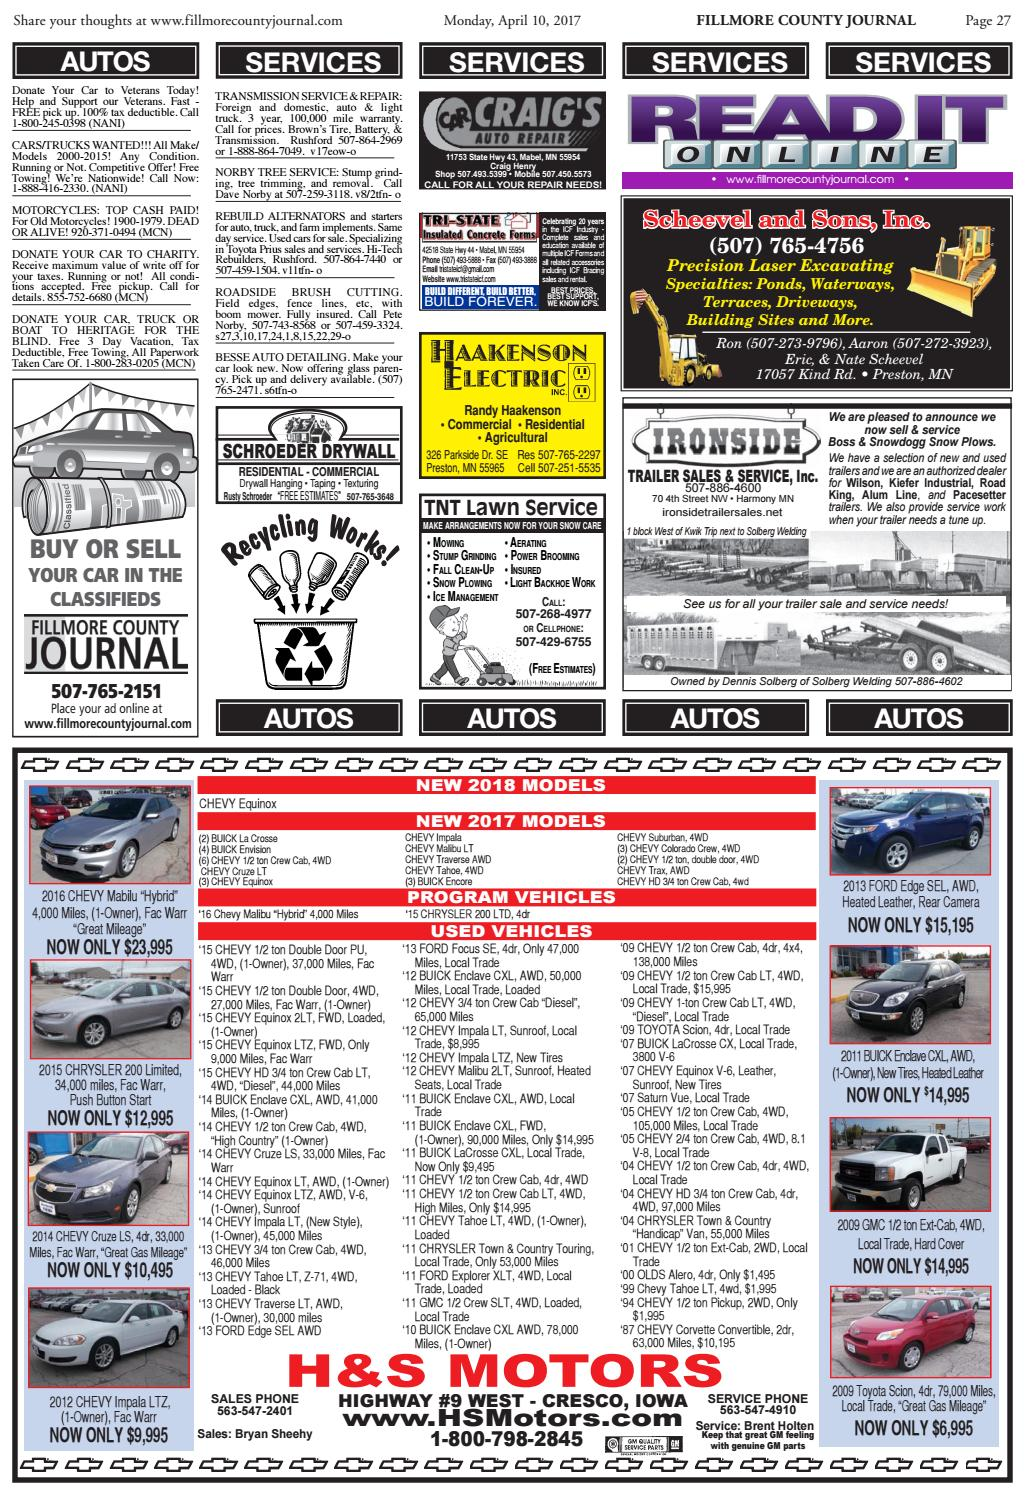 Fillmore county journal by jason sethre issuu for Charity motors 8 mile lahser